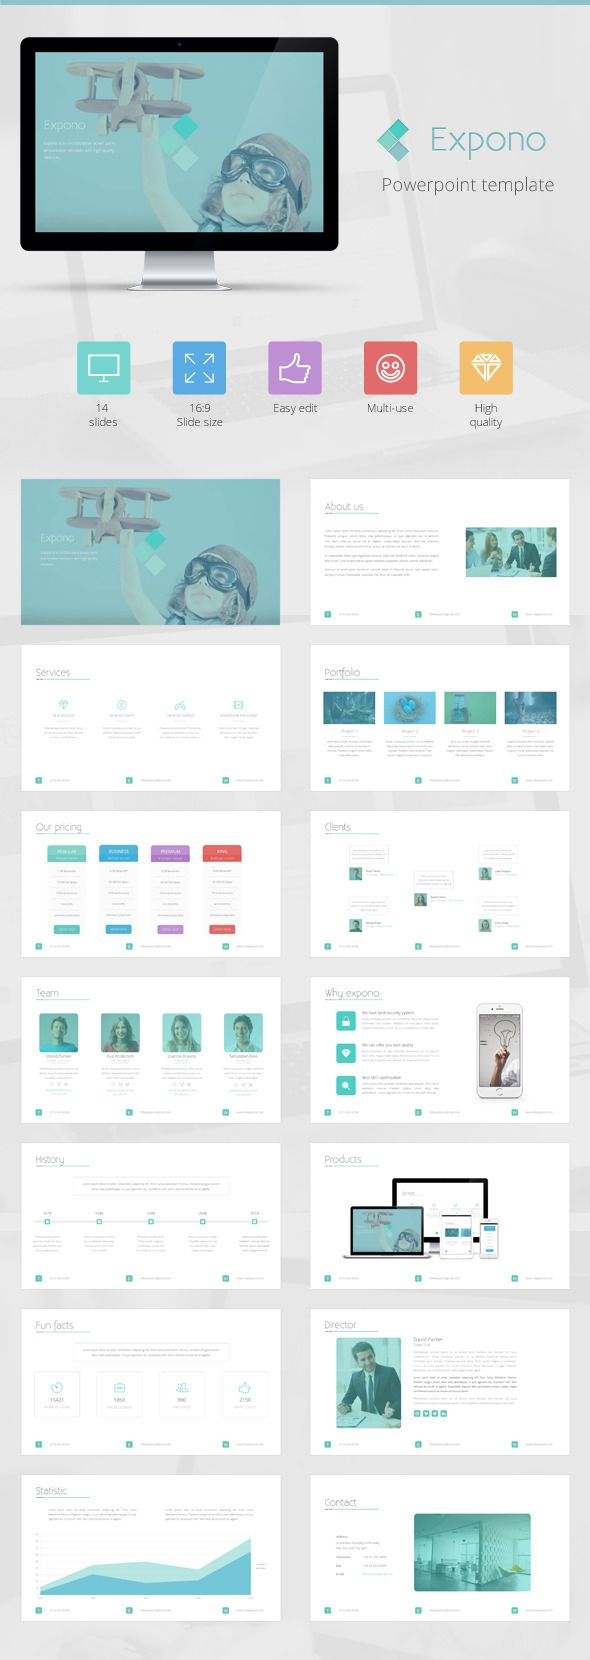 Expono Powerpoint Template (Powerpoint Templates) Preview